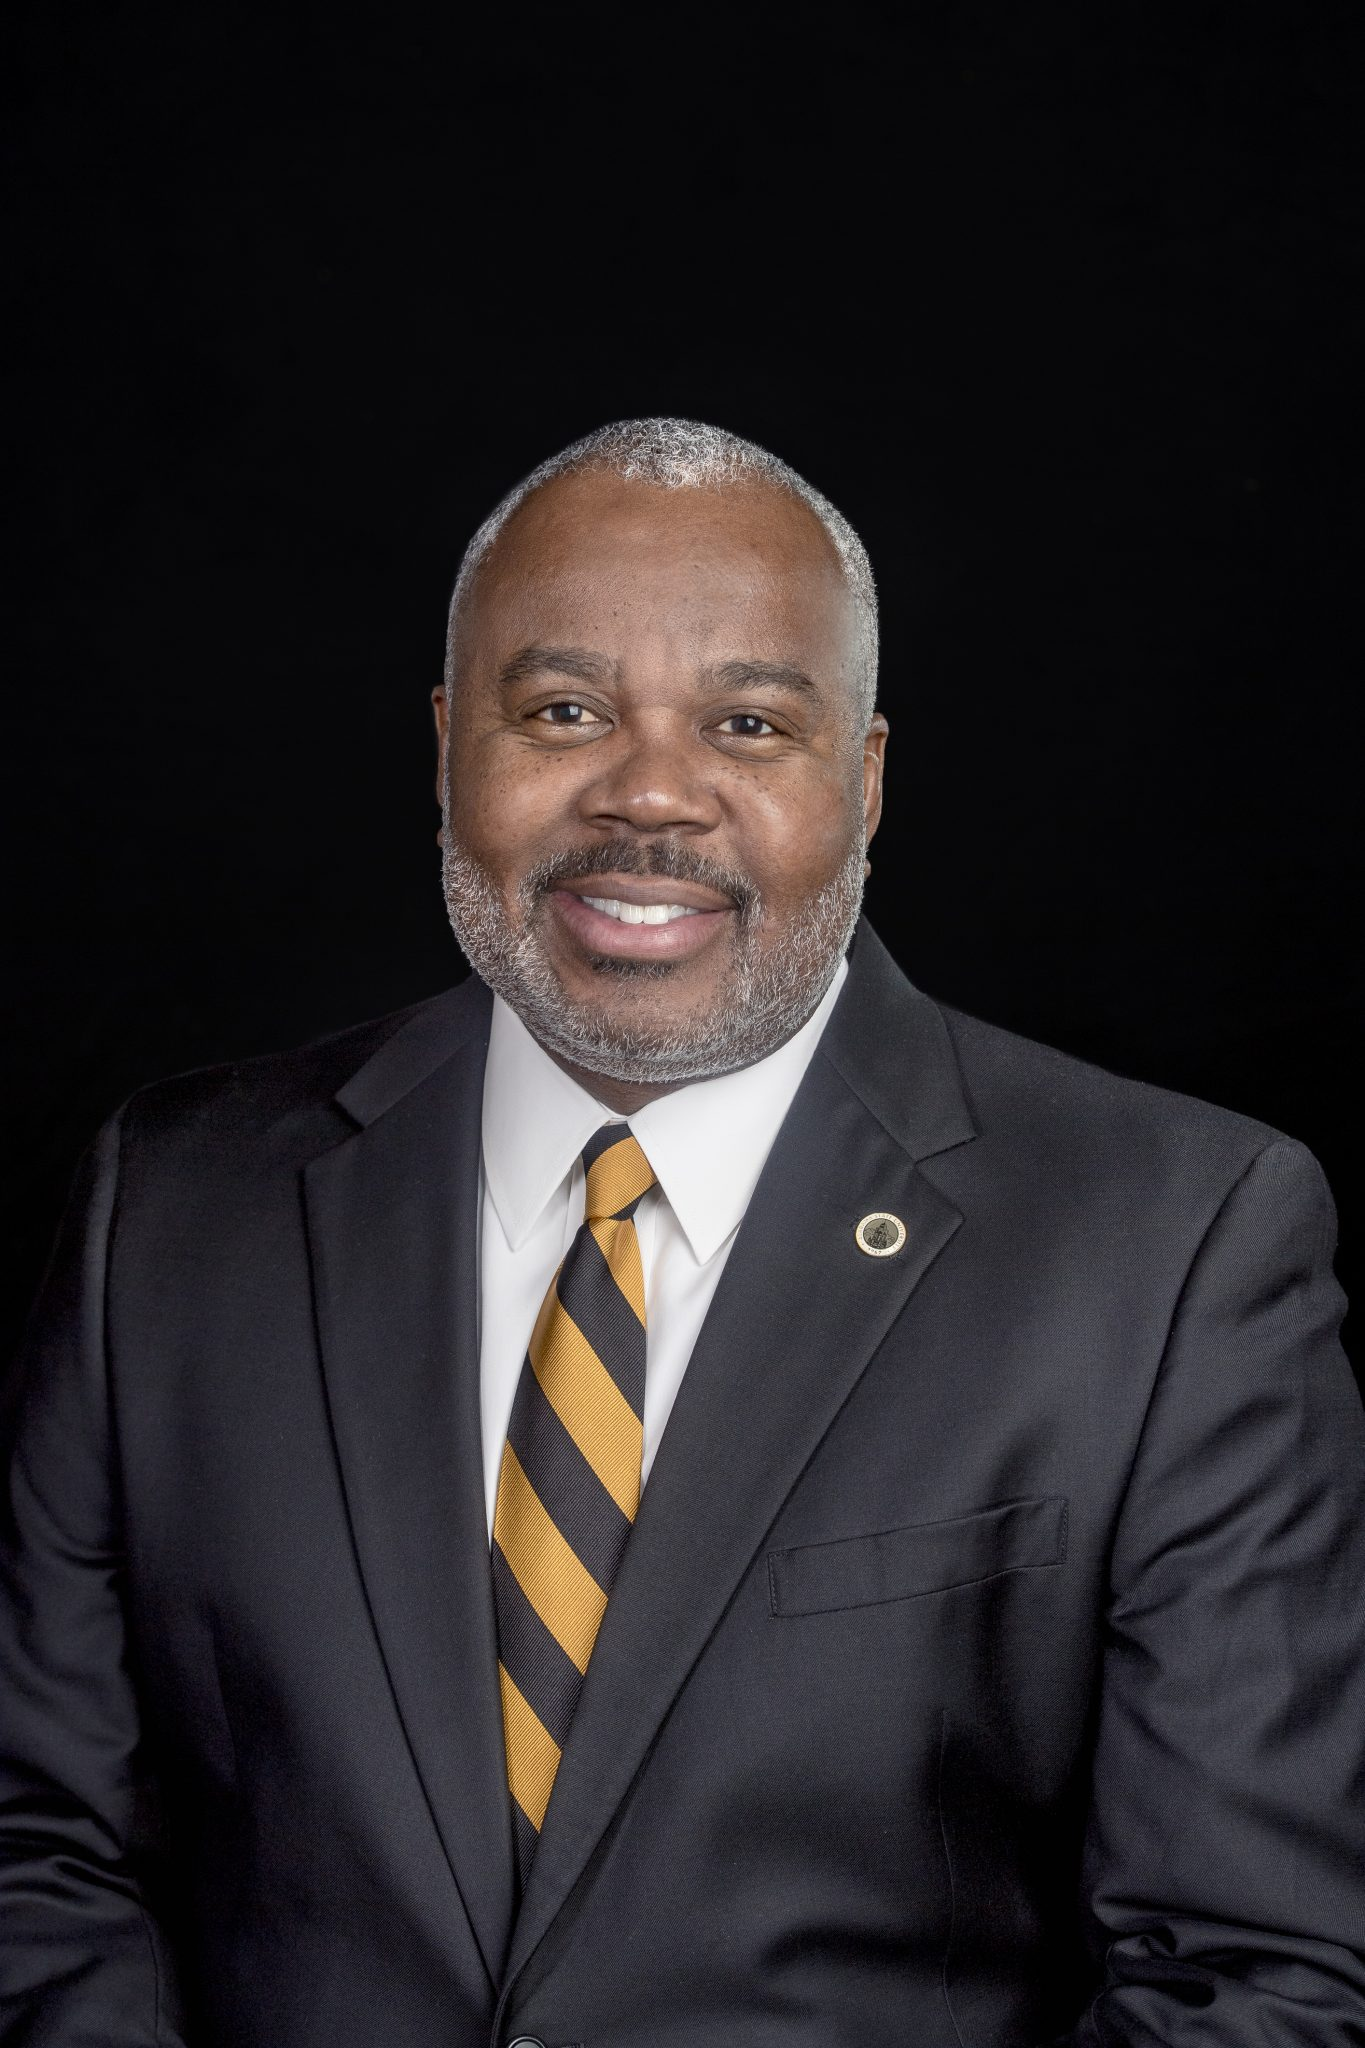 Dr. Ross's Contract as President Available on ASU Website